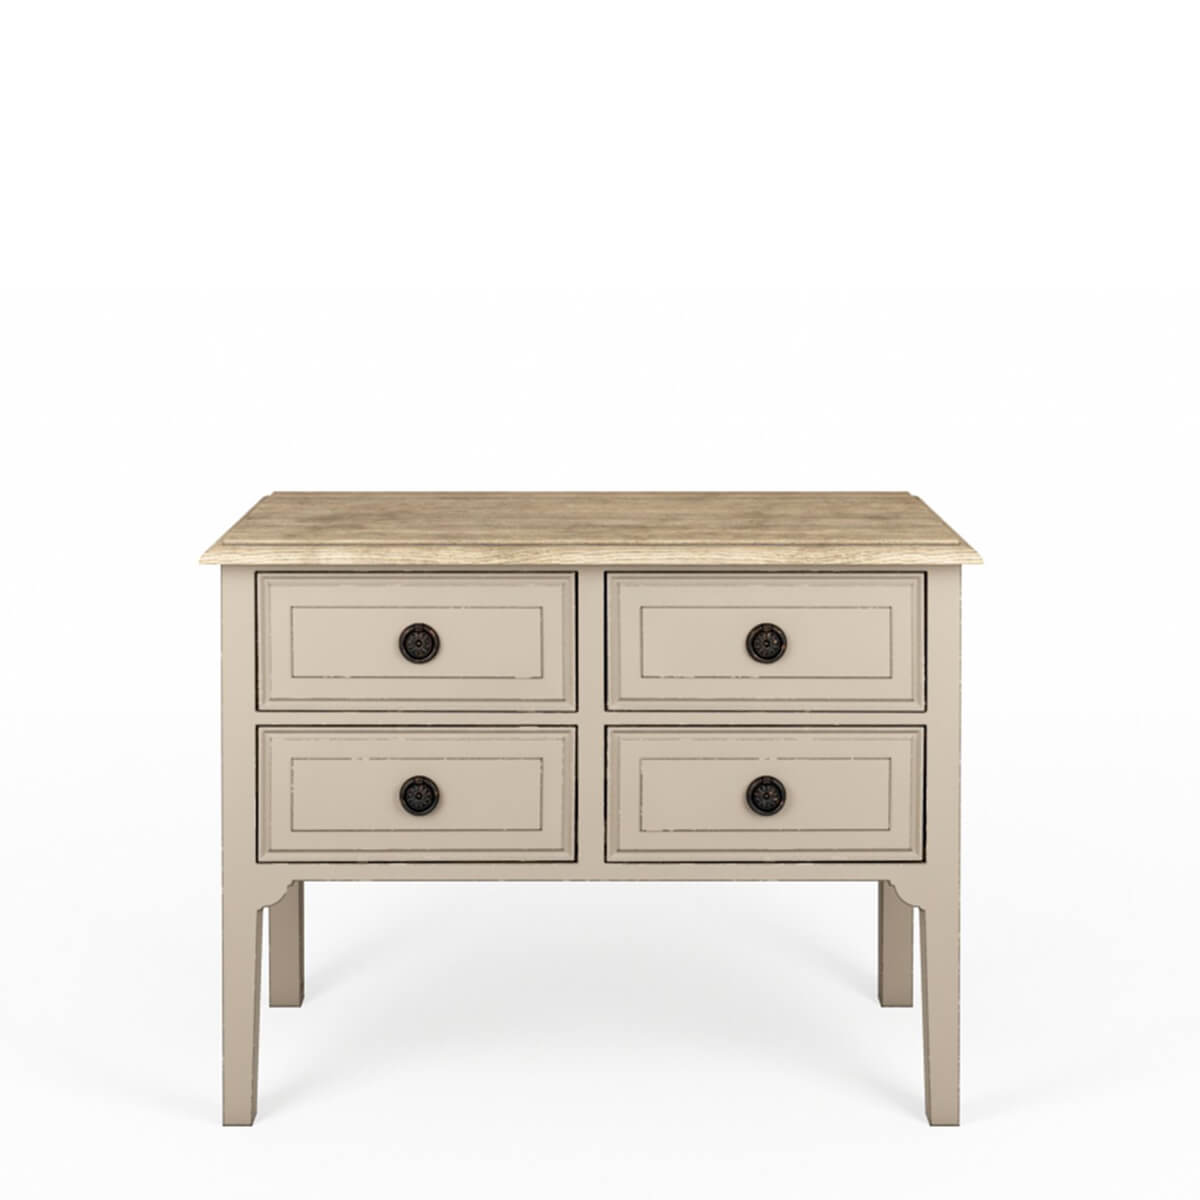 Amira-Chest-of-Drawers-Beige-CozyHome-Dubai